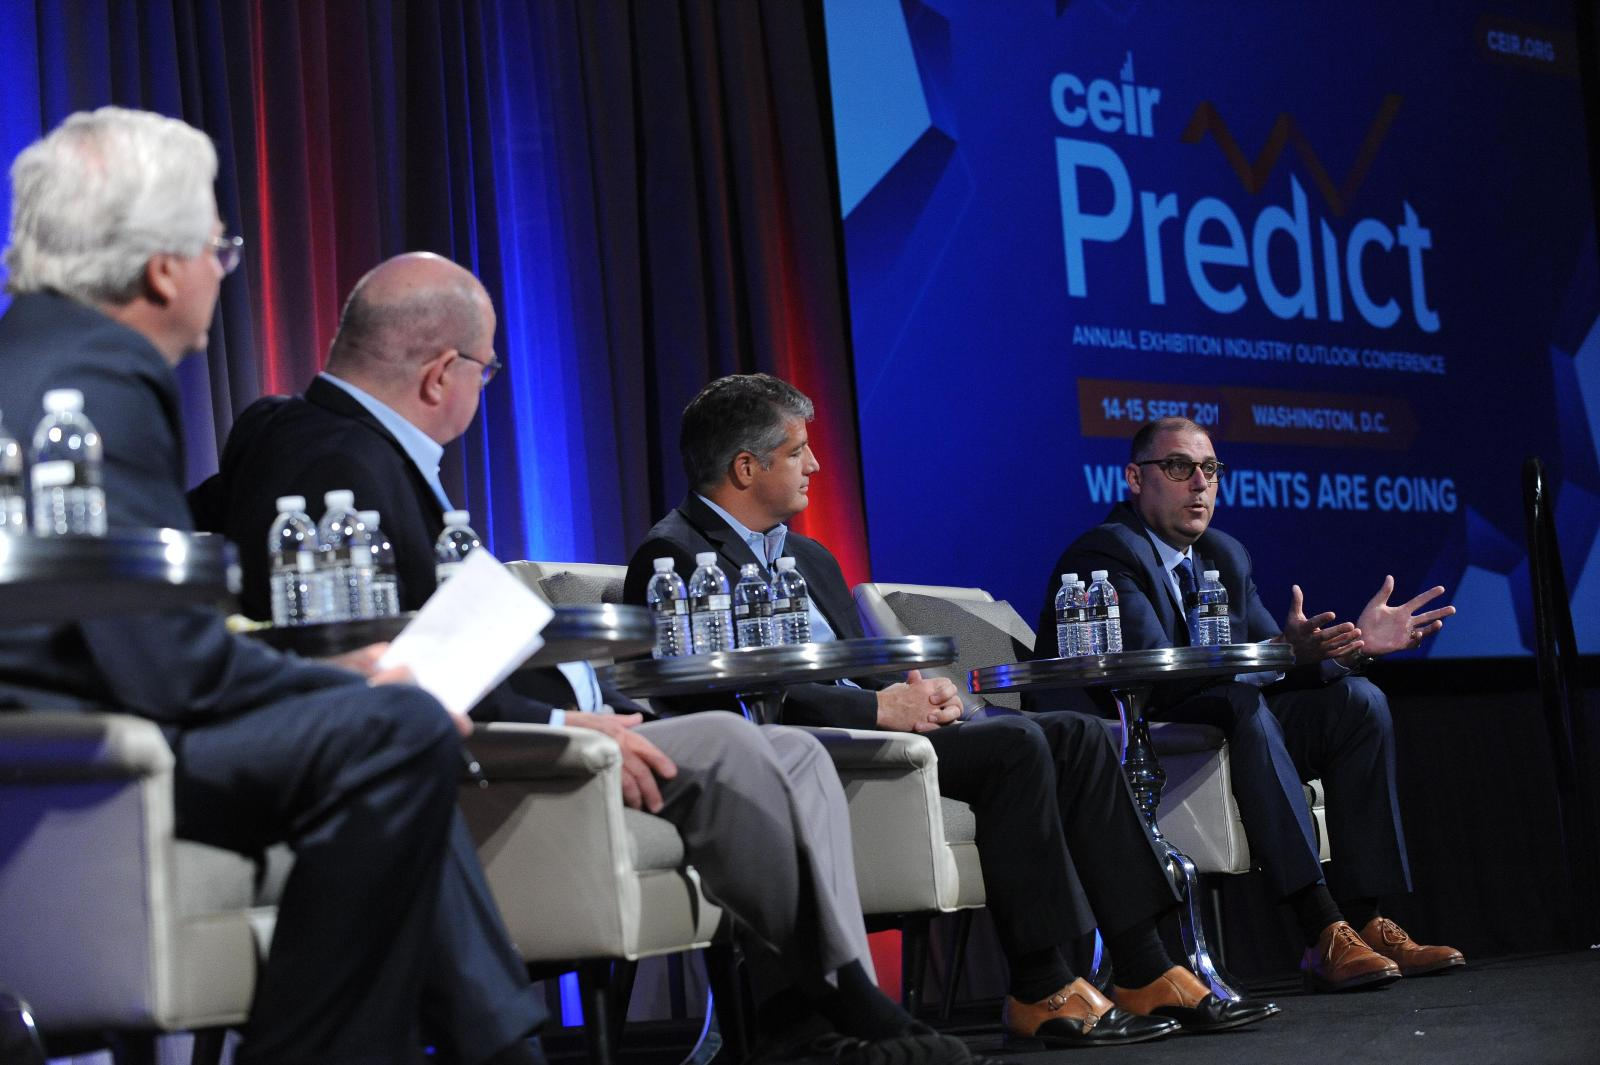 ceir-b2b-report-exhibitors-decidion-making-process-aligning-exhibit-sales-for-success